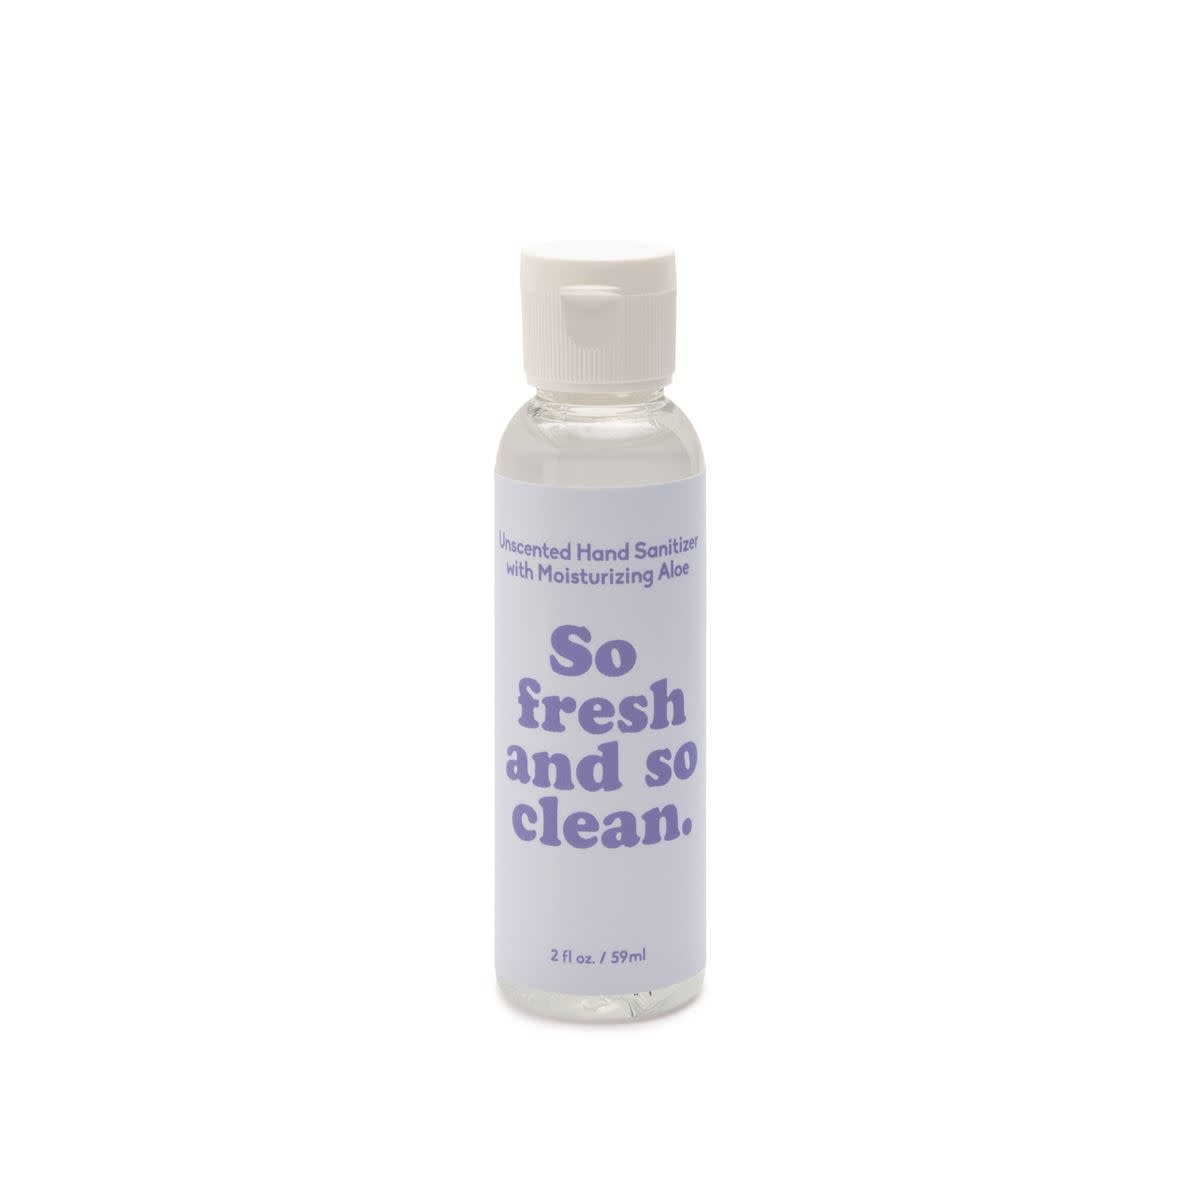 Paddywax - PA PA AP - So Fresh and So Clean (purple) Hand Sanitizer